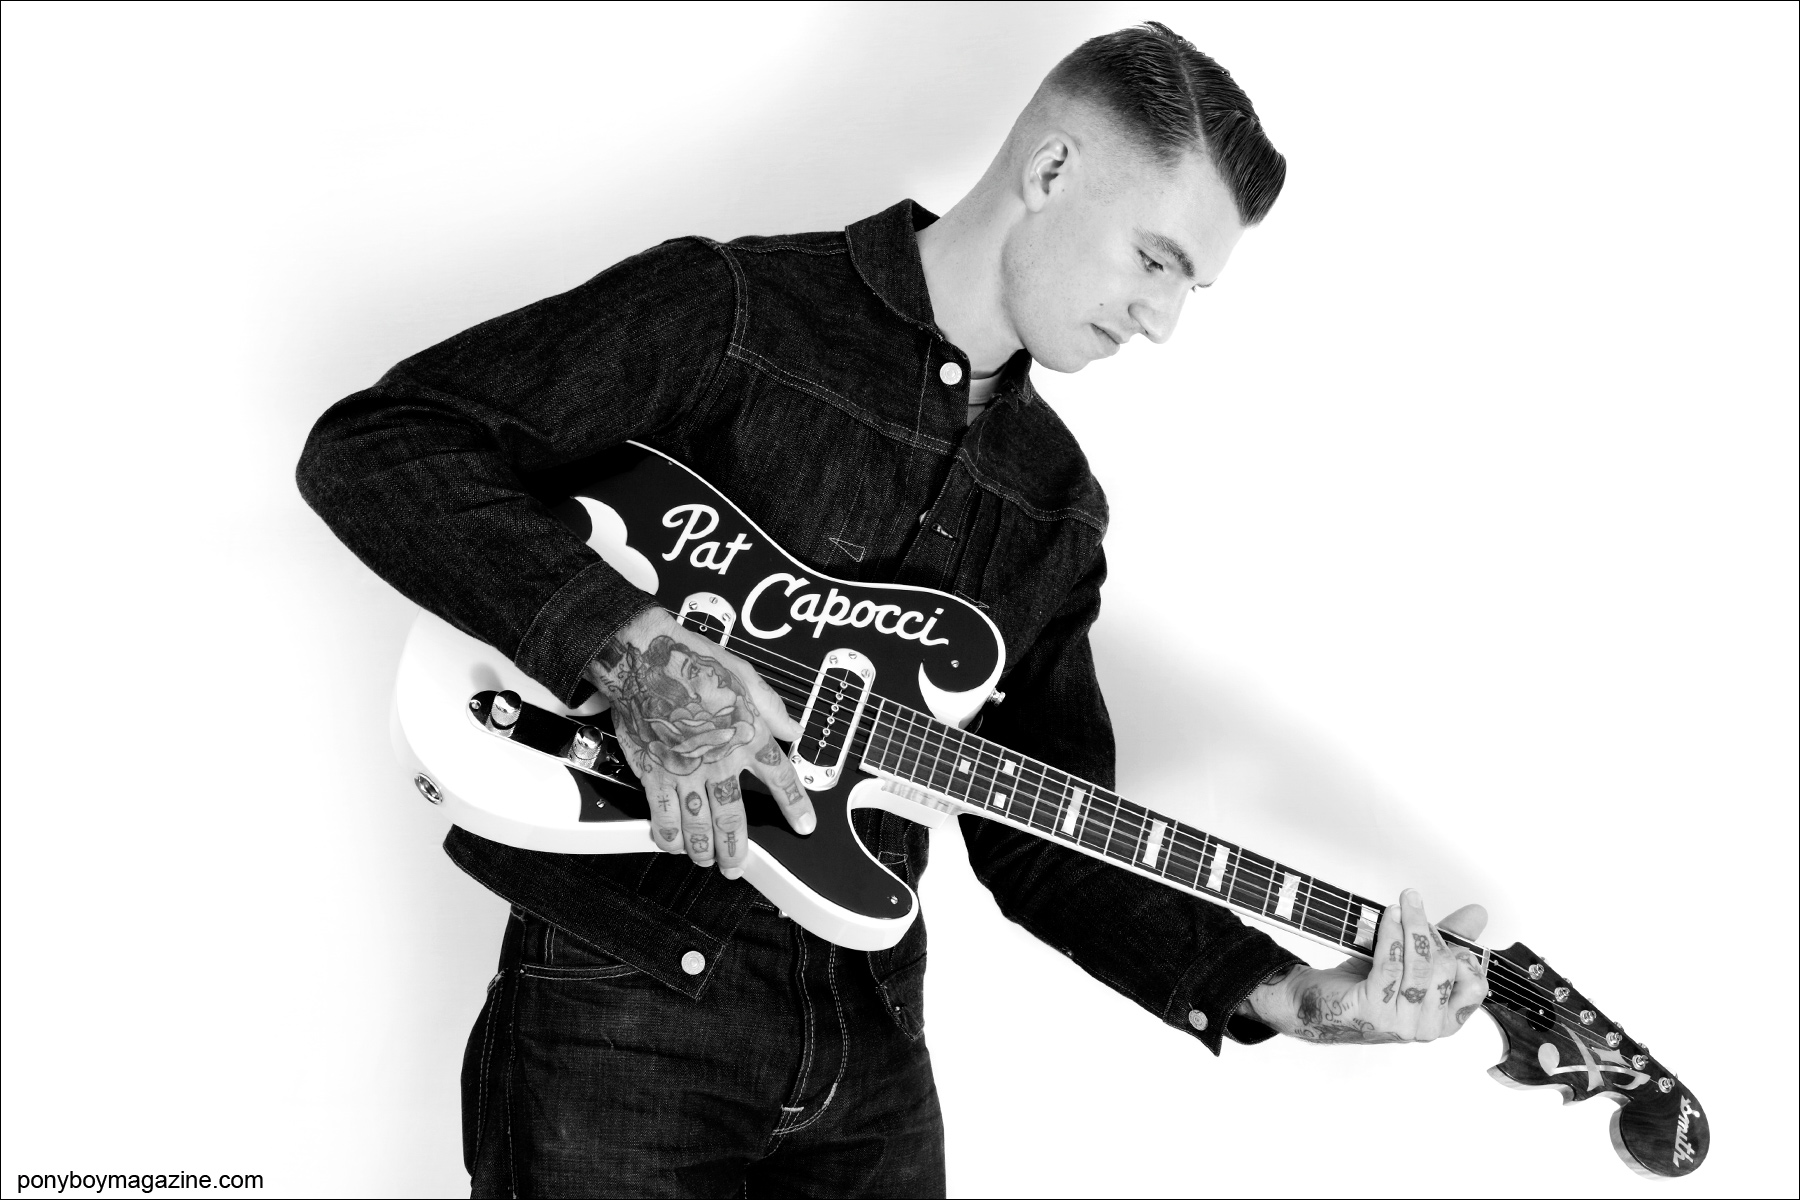 Australian rockabilly musician Pat Capocci photographed for Ponyboy Magazine by Alexander Thompson in Las Vegas.